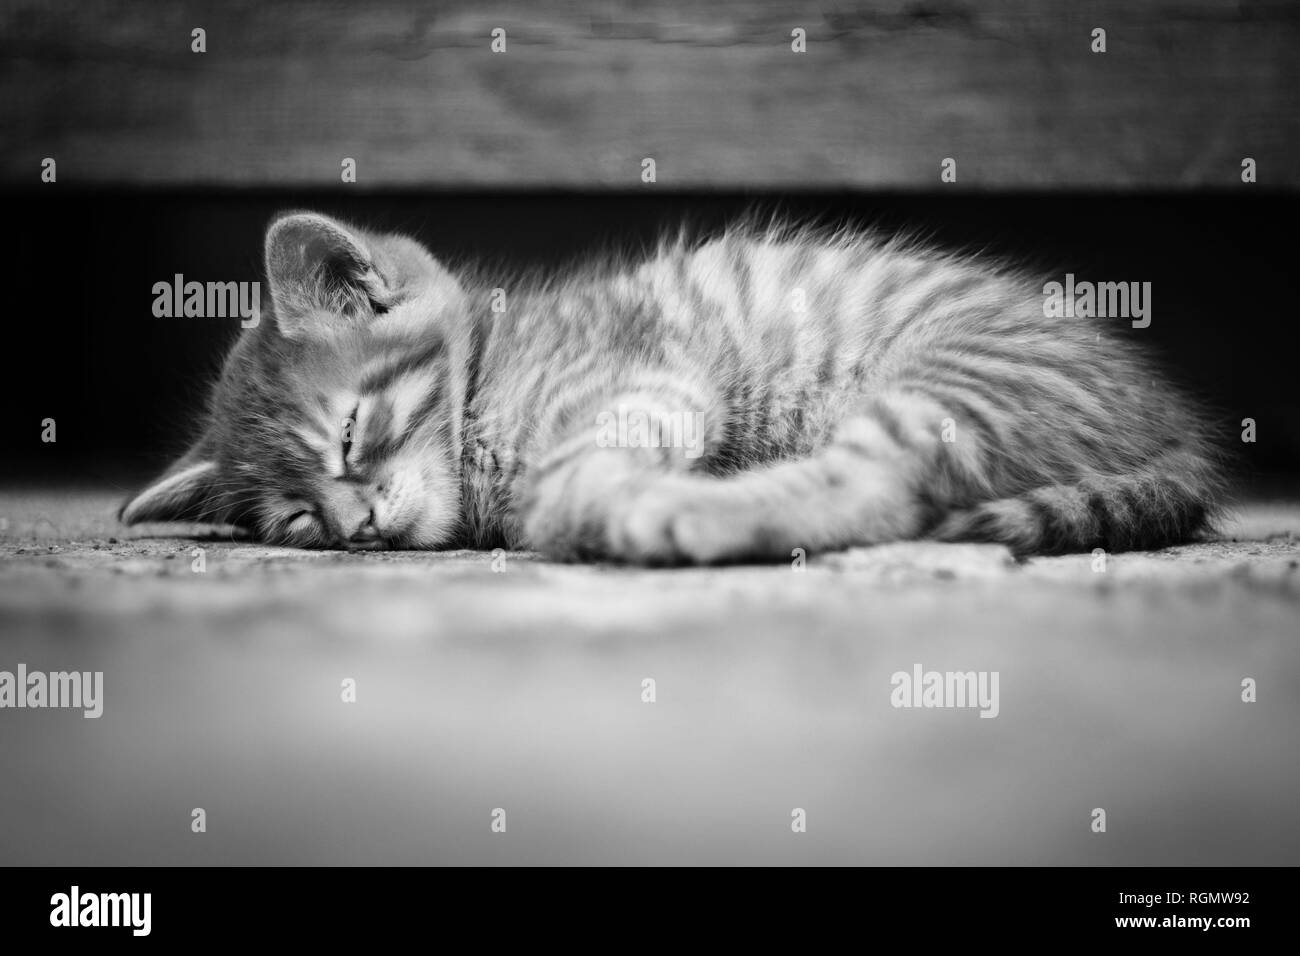 Adorable Kittens in black and white, monochrome. - Stock Image